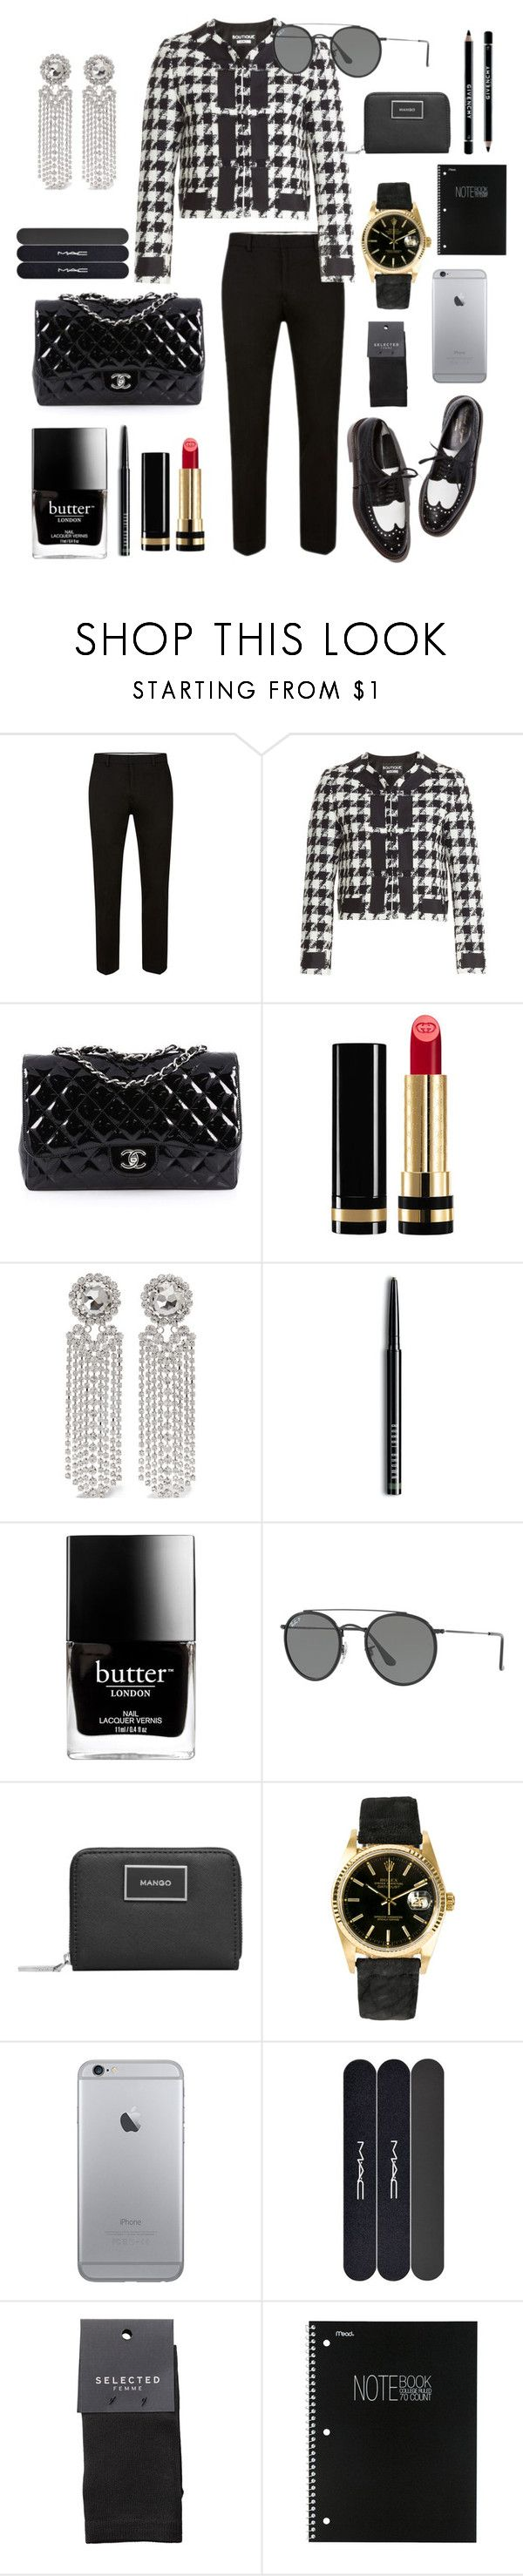 """pinky swear ?"" by romydveen ❤ liked on Polyvore featuring Boutique Moschino, Chanel, Gucci, Alessandra Rich, Bobbi Brown Cosmetics, Butter London, Ray-Ban, MANGO, Rolex and MAC Cosmetics"